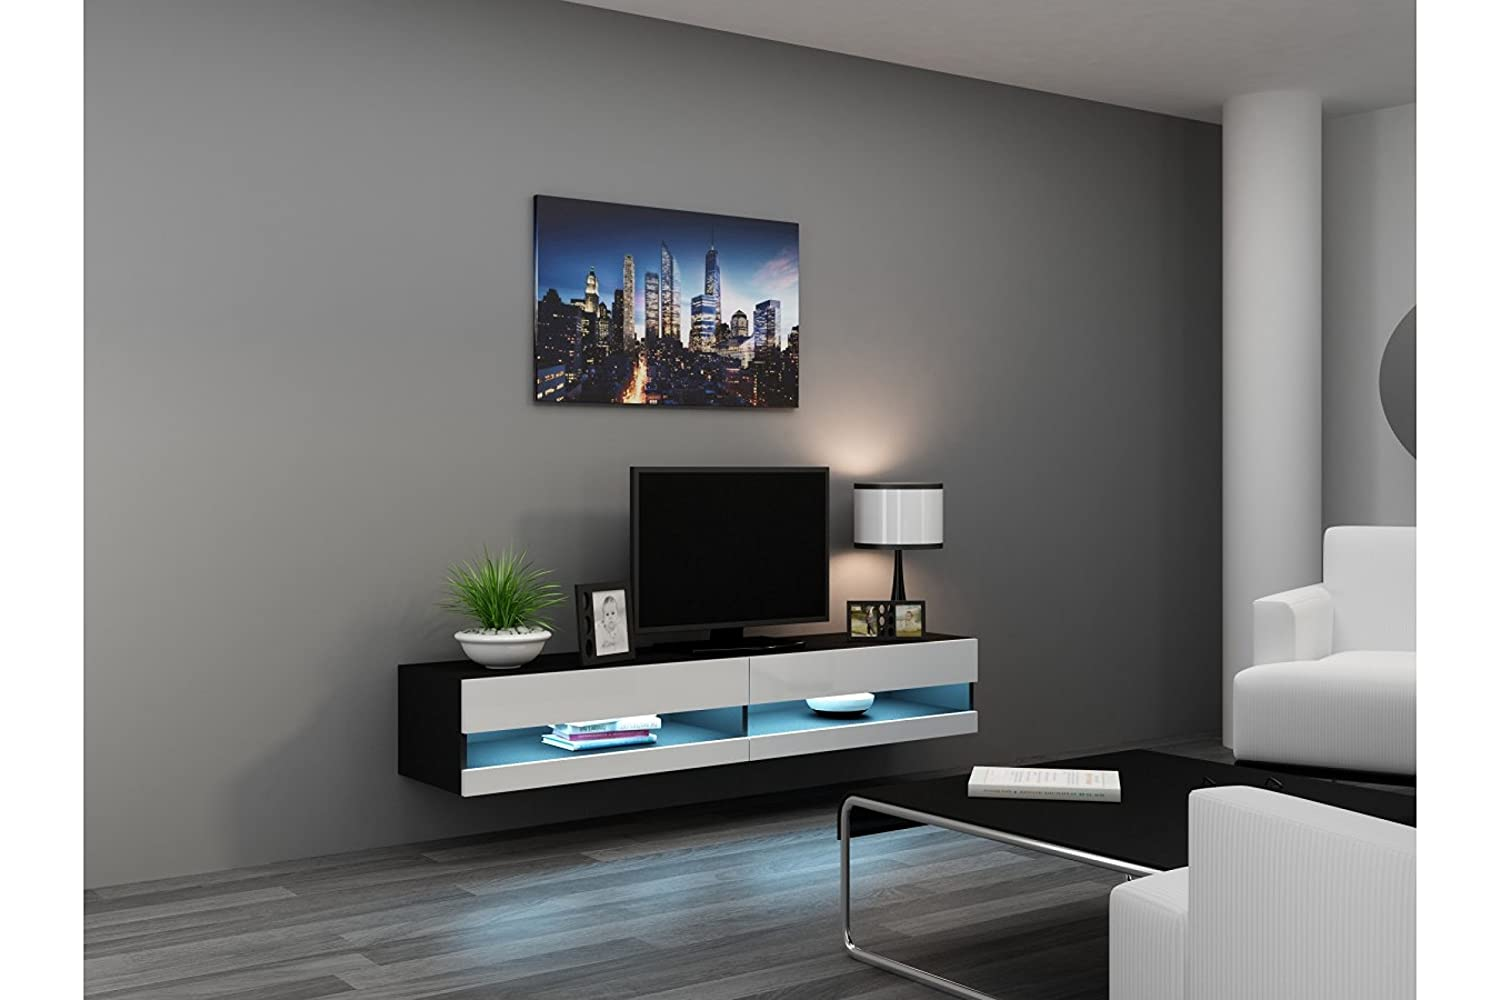 amazoncom concept muebles  inch seattle high gloss led tv  - amazoncom concept muebles  inch seattle high gloss led tv stand black kitchen  dining